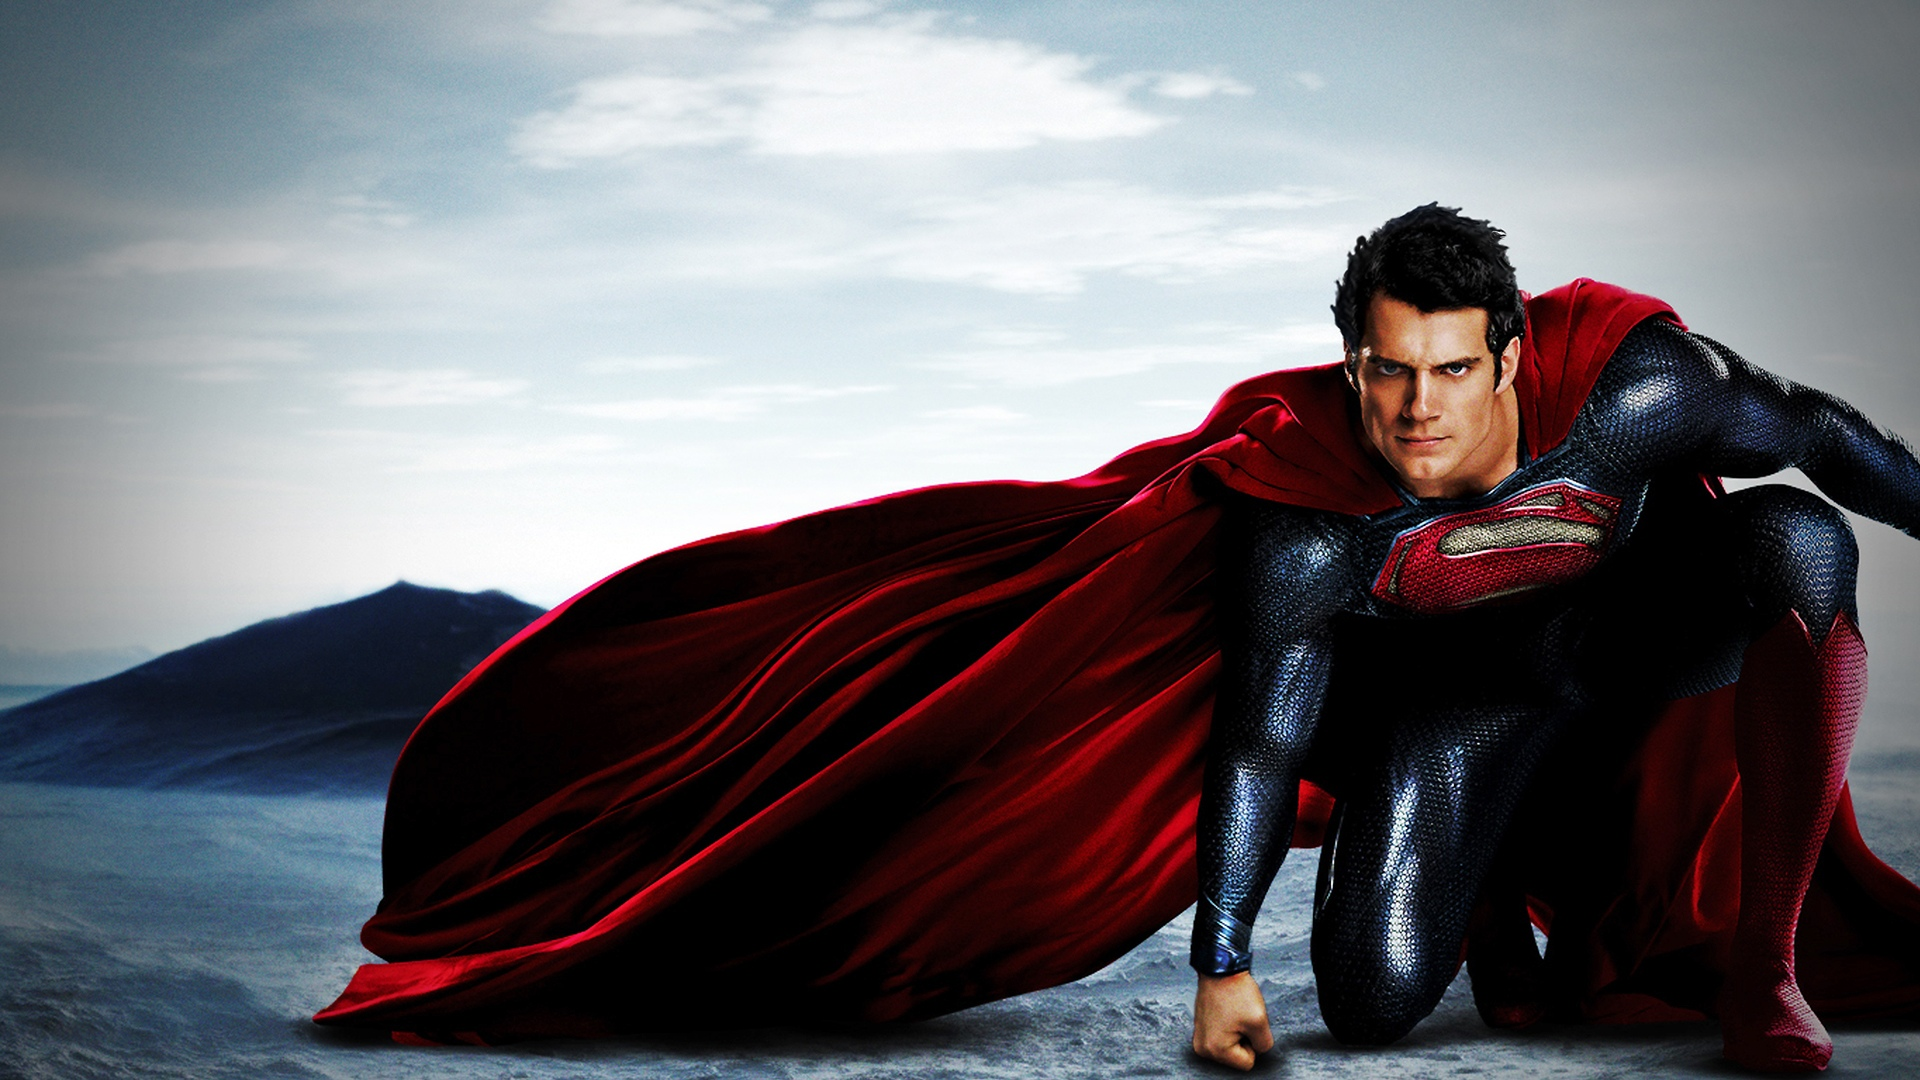 Superman Man of Steel wallpaper 12